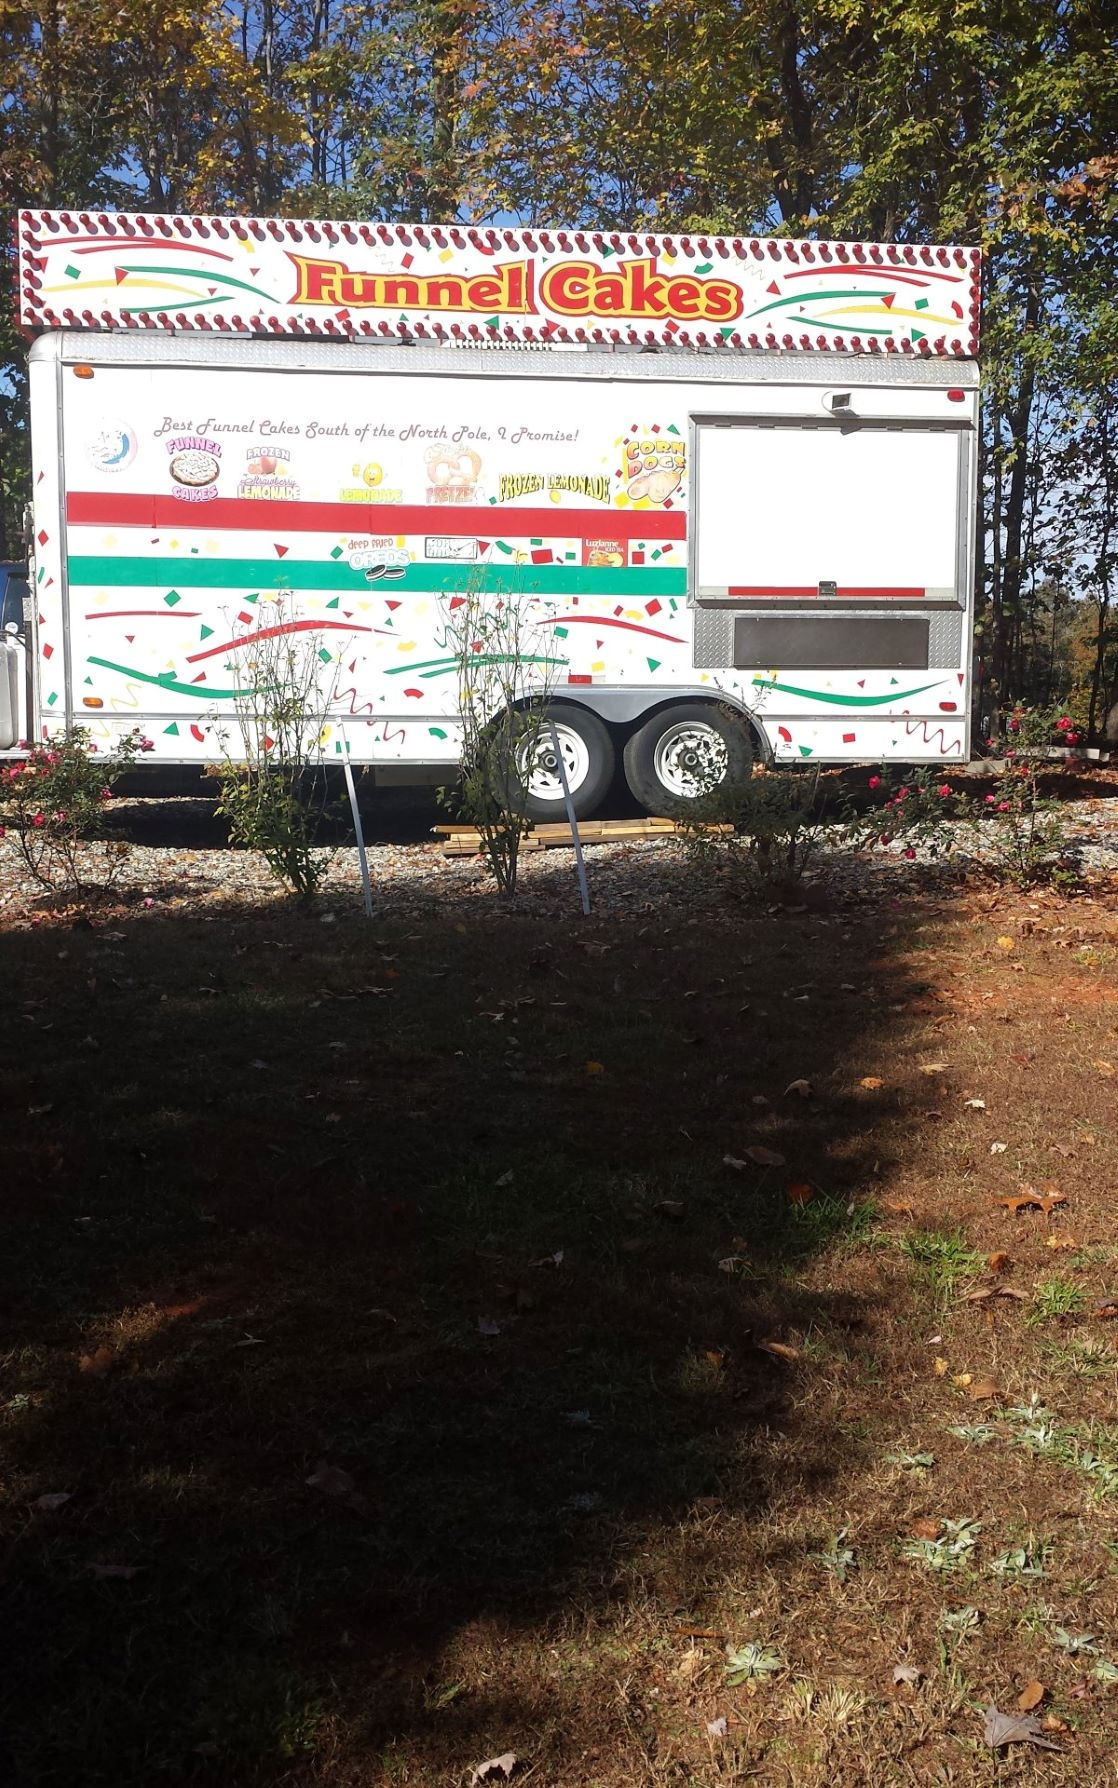 Used Funnel Cake Concession Trailer For Sale With Two Deep